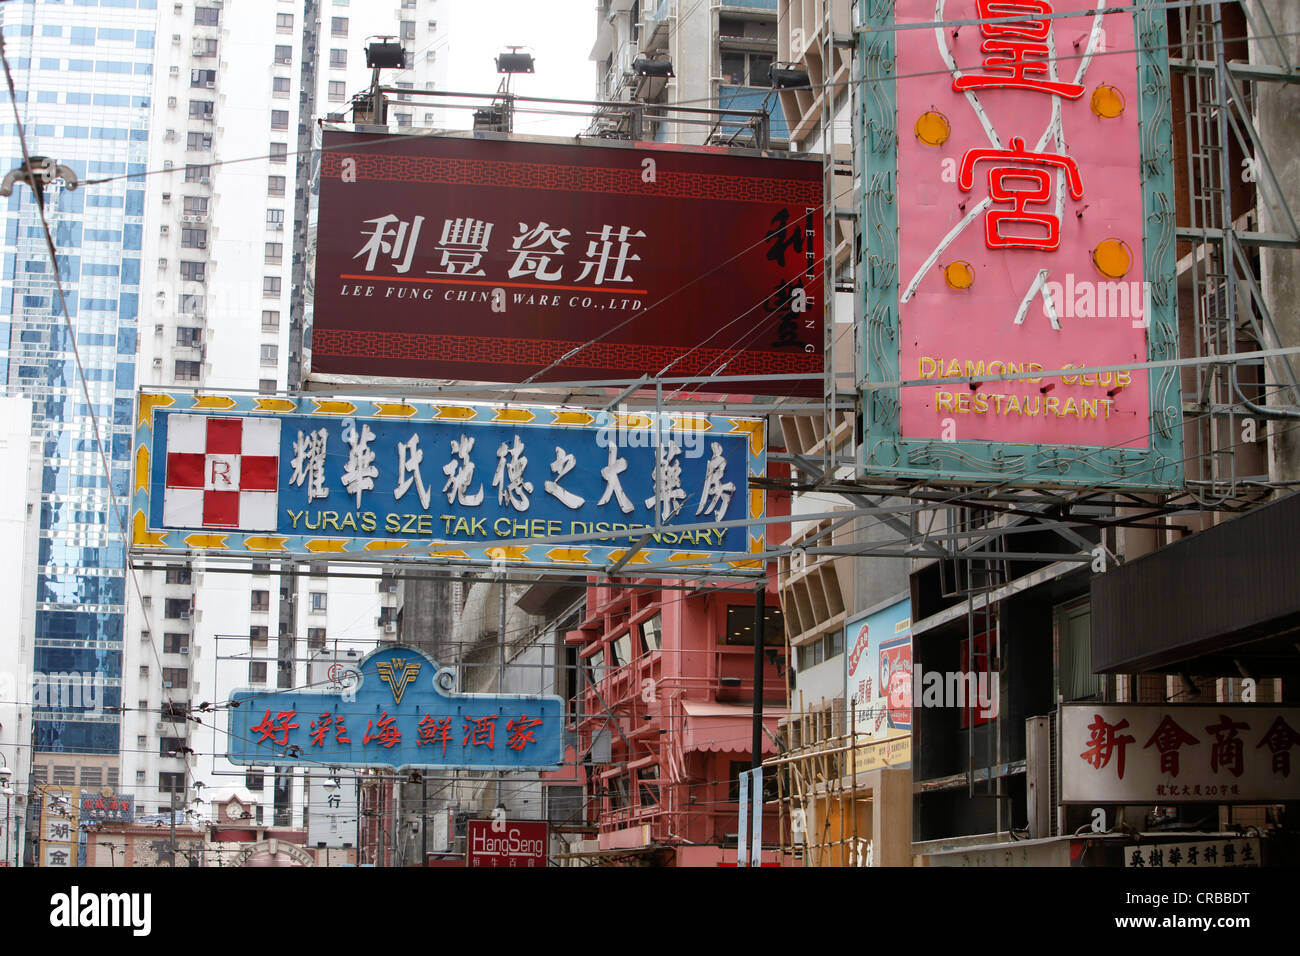 Billboards with Asian typography, Hong Kong Island, Hong Kong Special Administrative Region of the People's - Stock Image